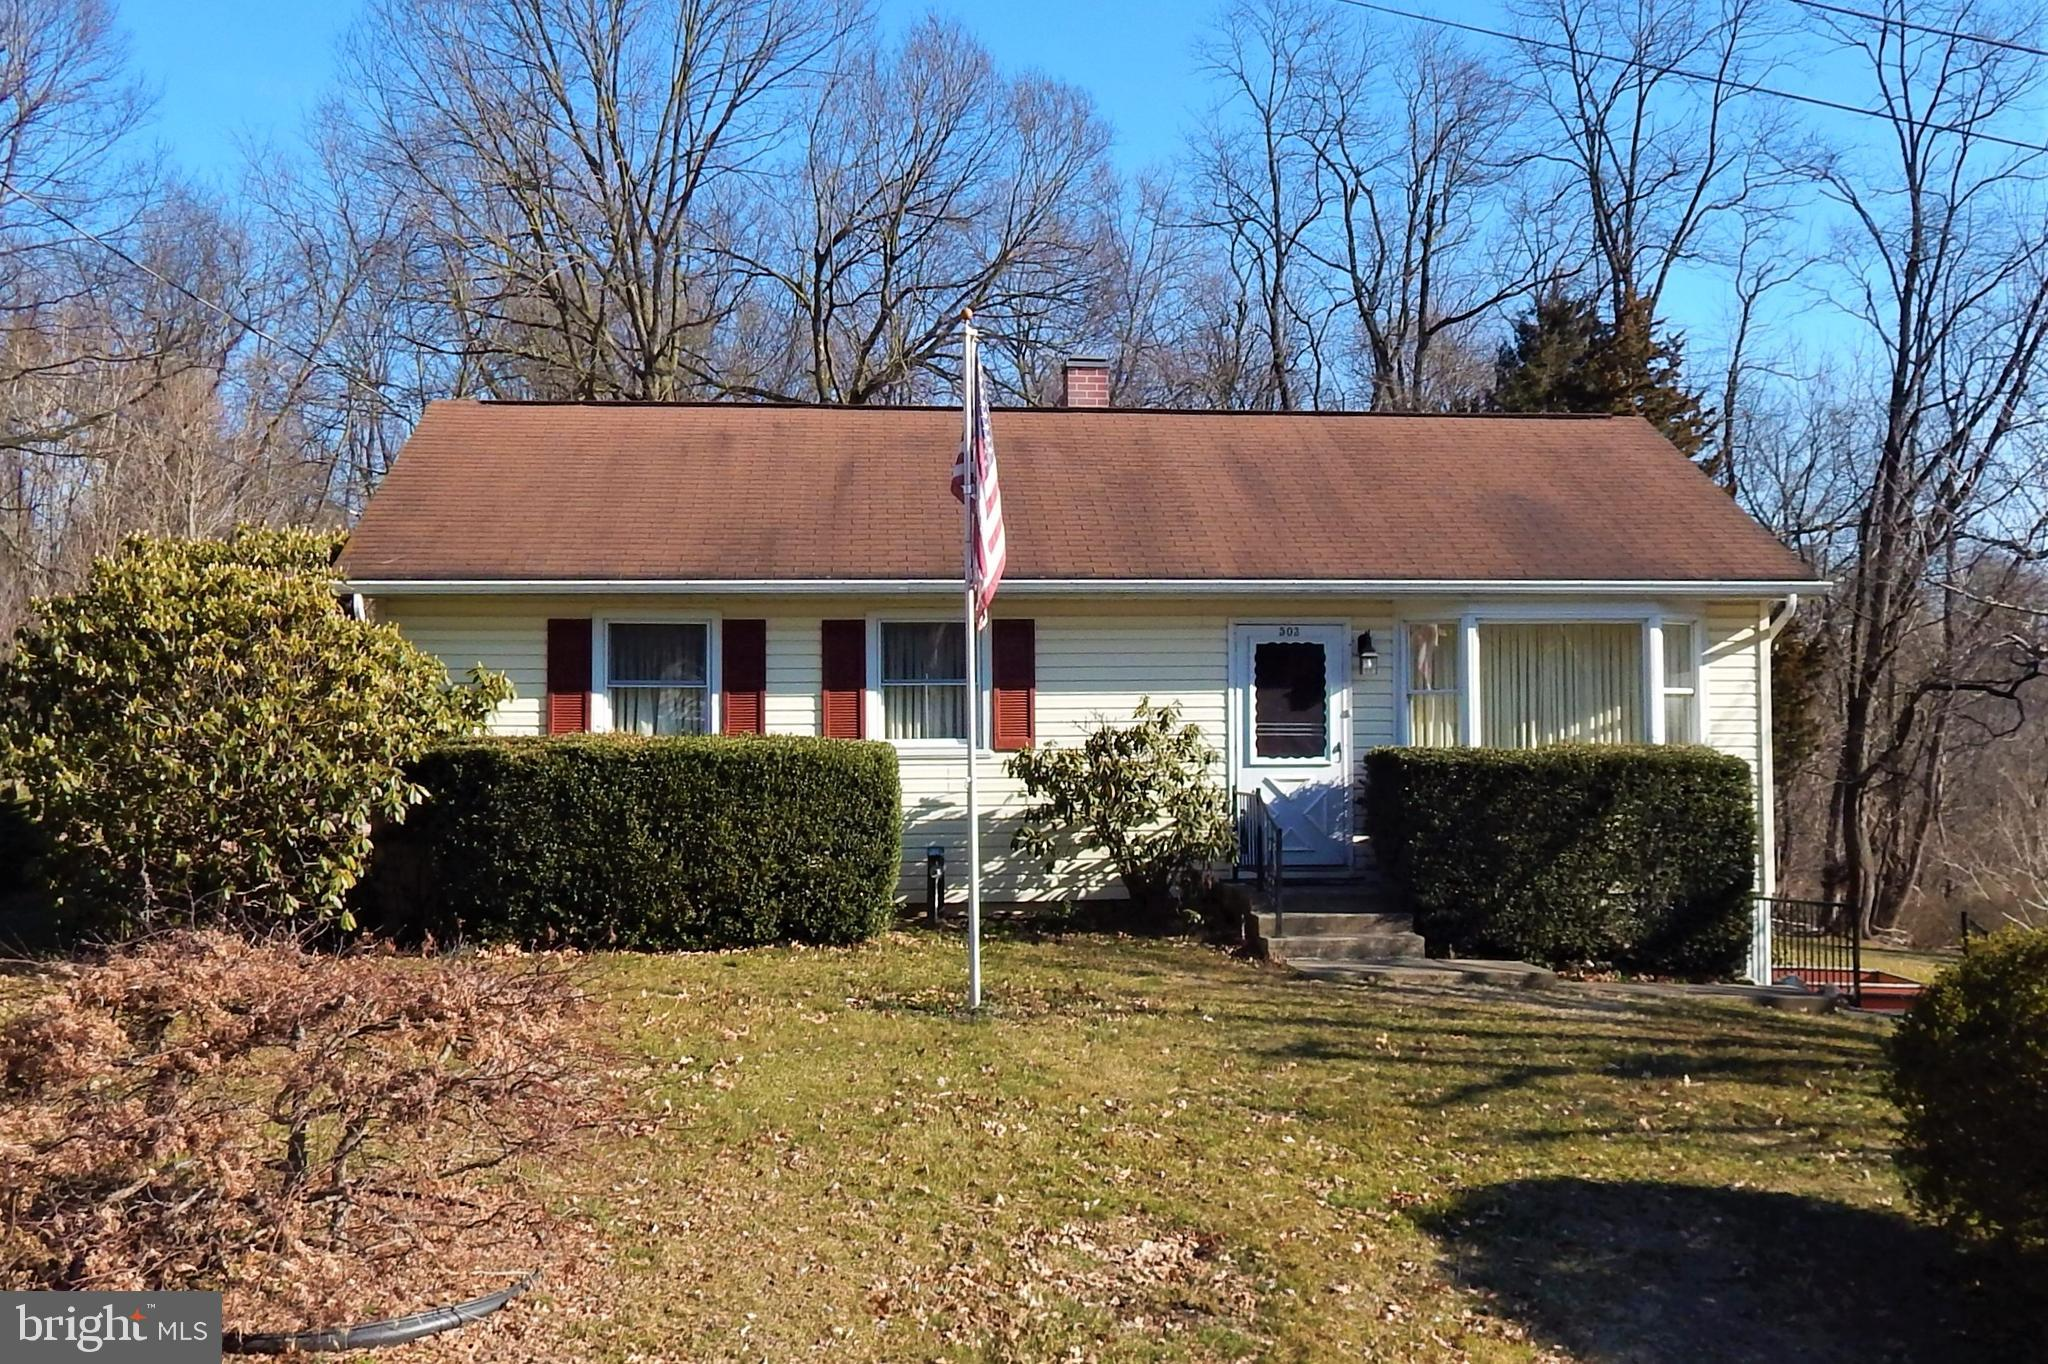 503 MEADOW LANE, WRIGHTSVILLE, PA 17368